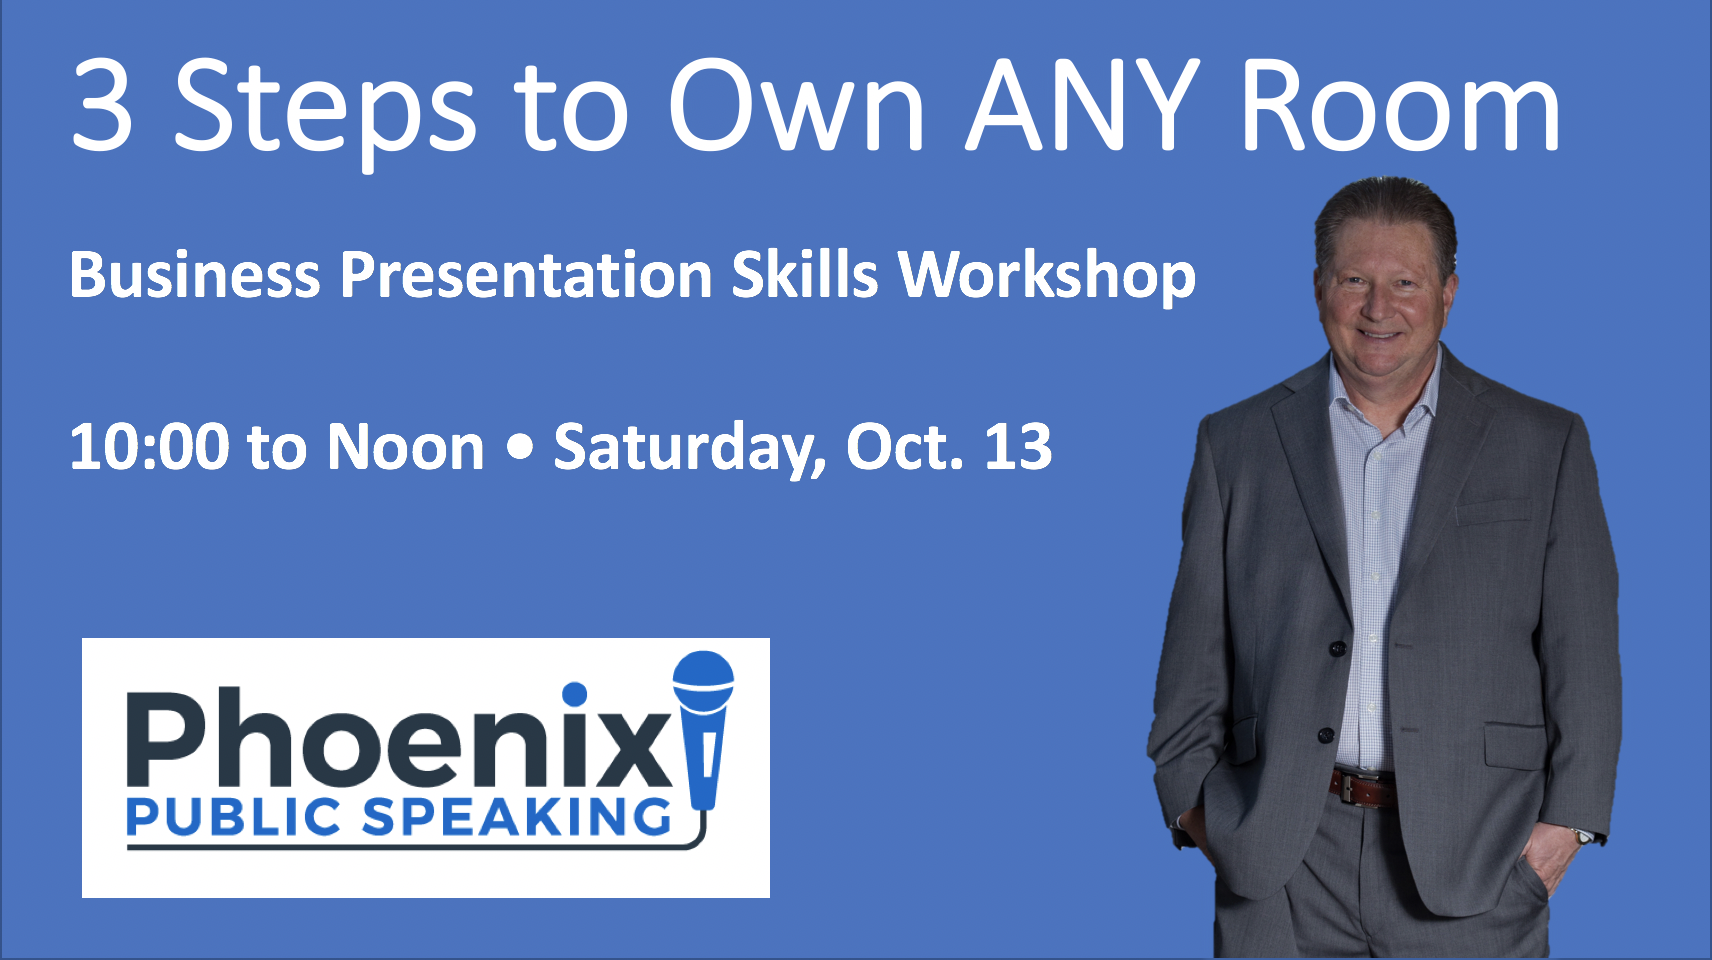 Phoenix public speaking AD for business presentation skills workshop.